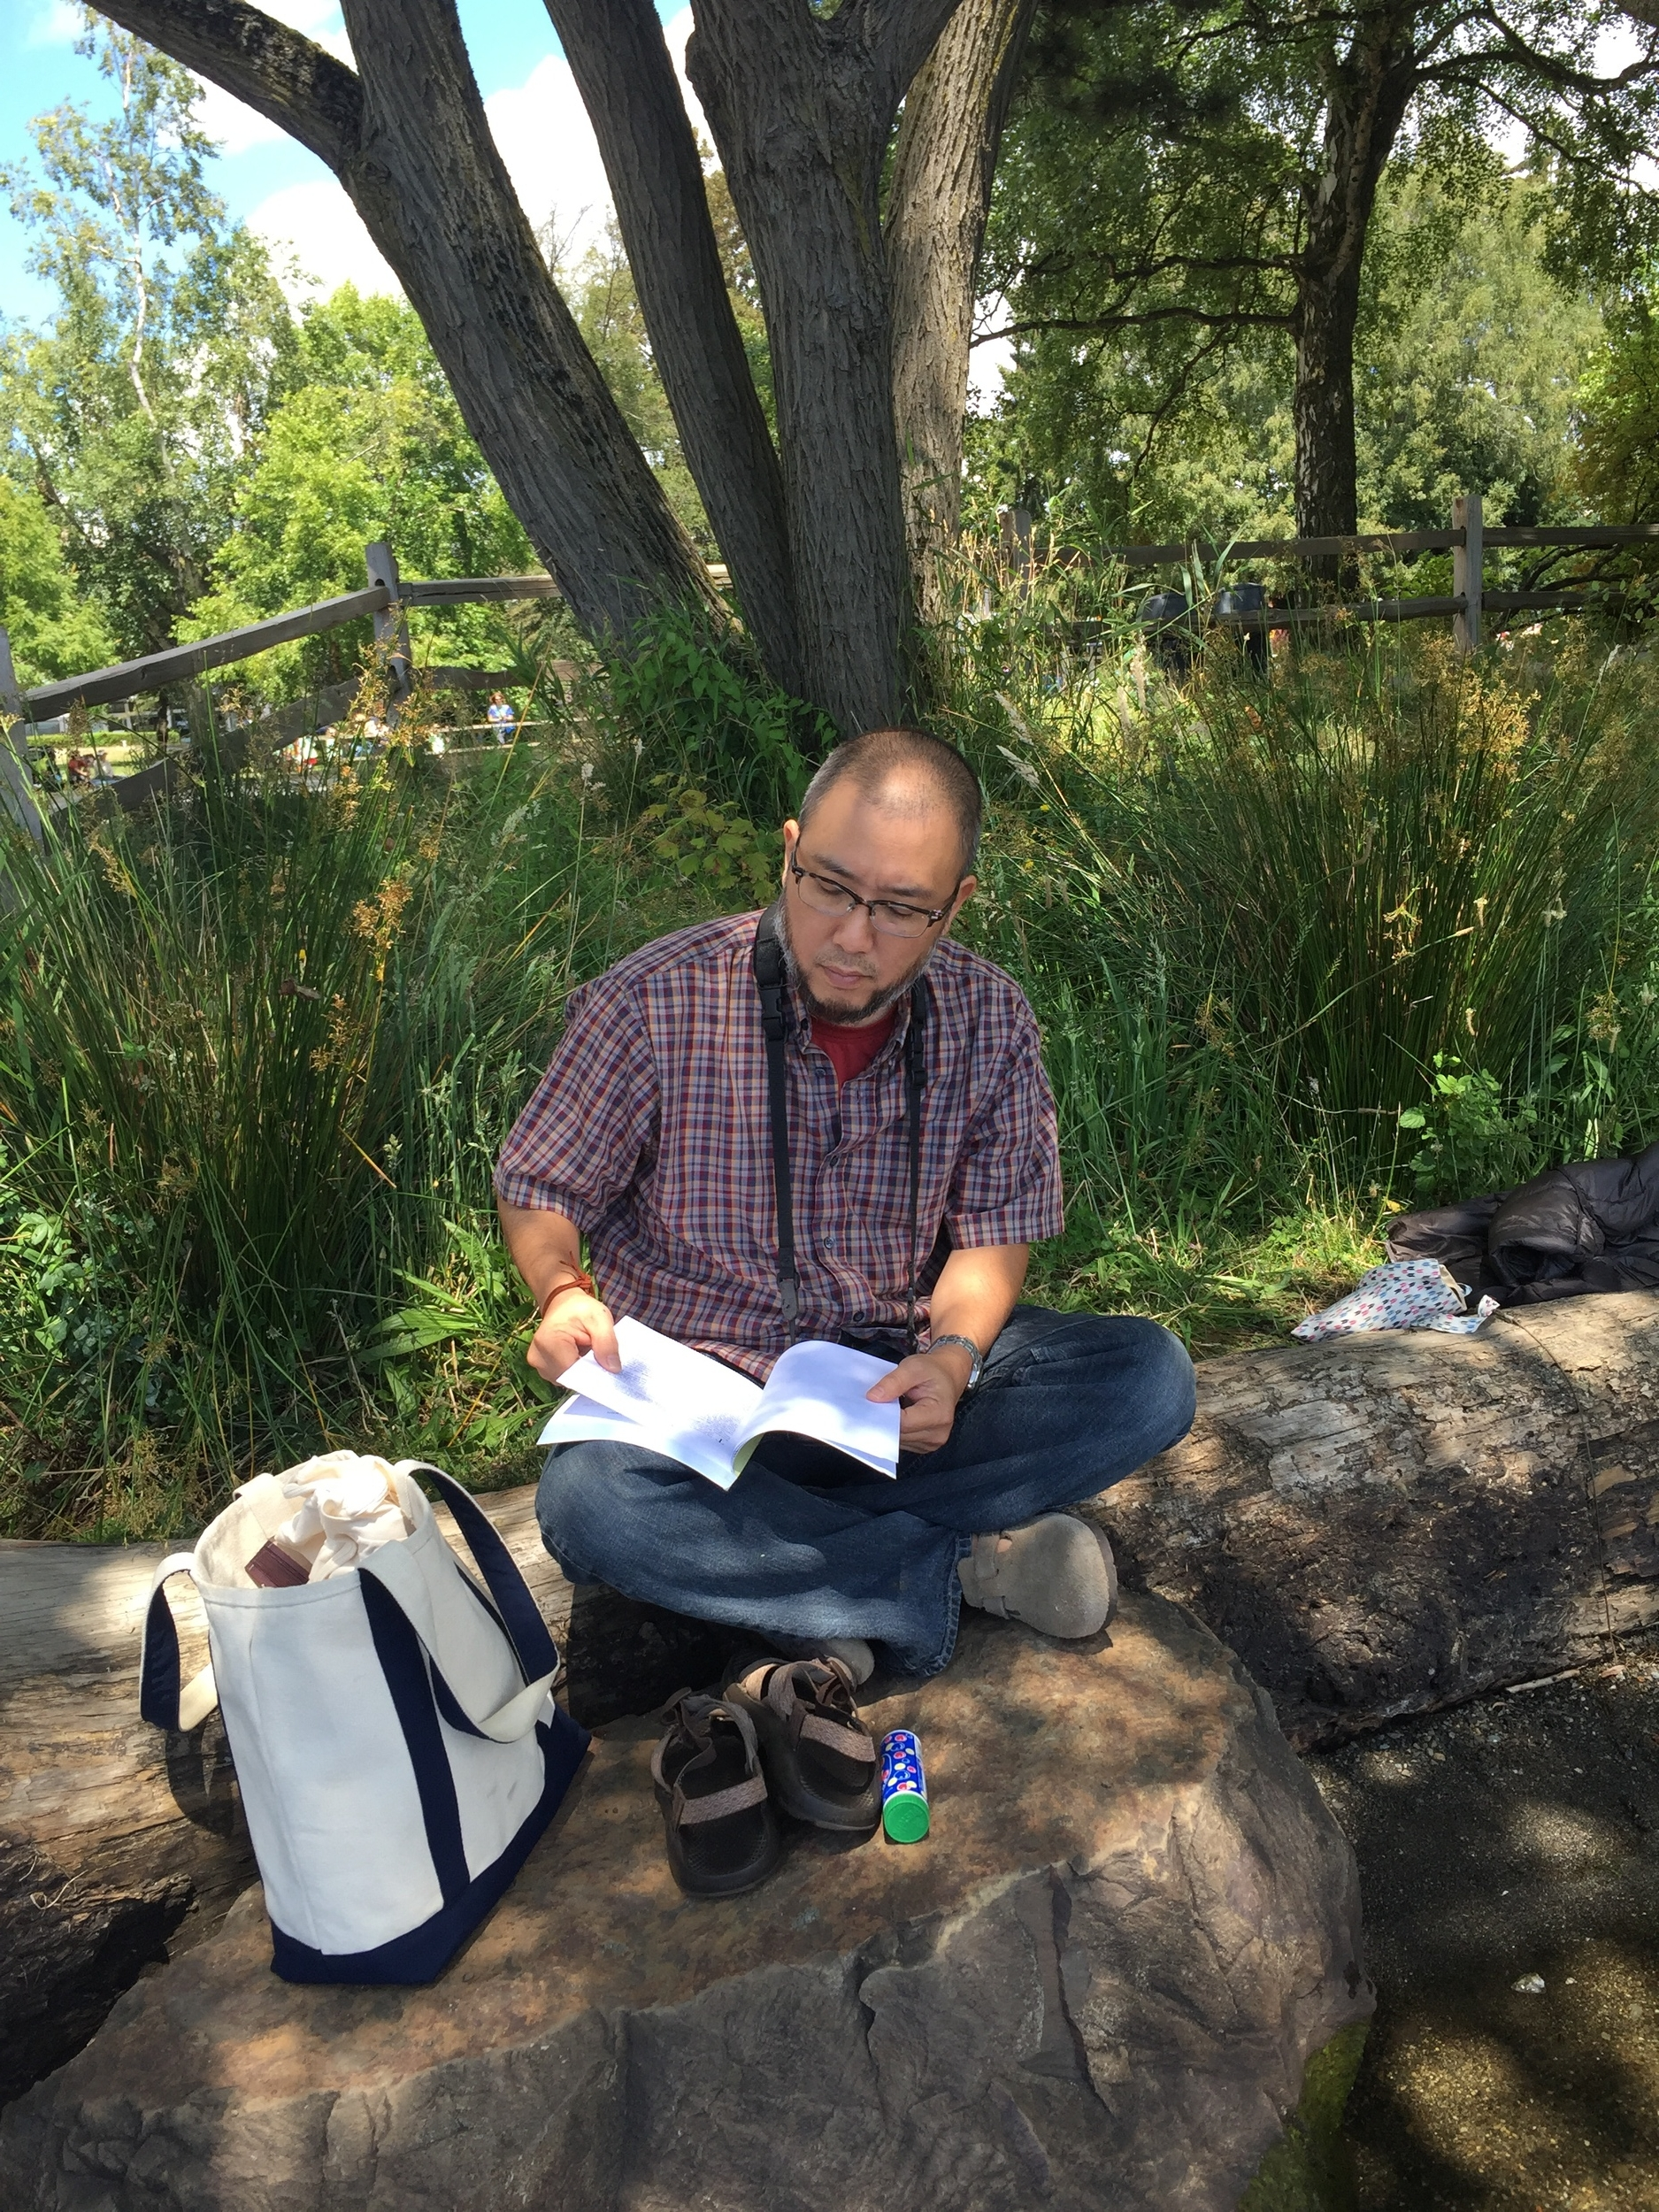 Besides seminar practices and the tournament, we had a chance to do some relaxing things too. This is me reading a book for a little while at Green Lake Park in Seattle.  Photo by Hayashi.